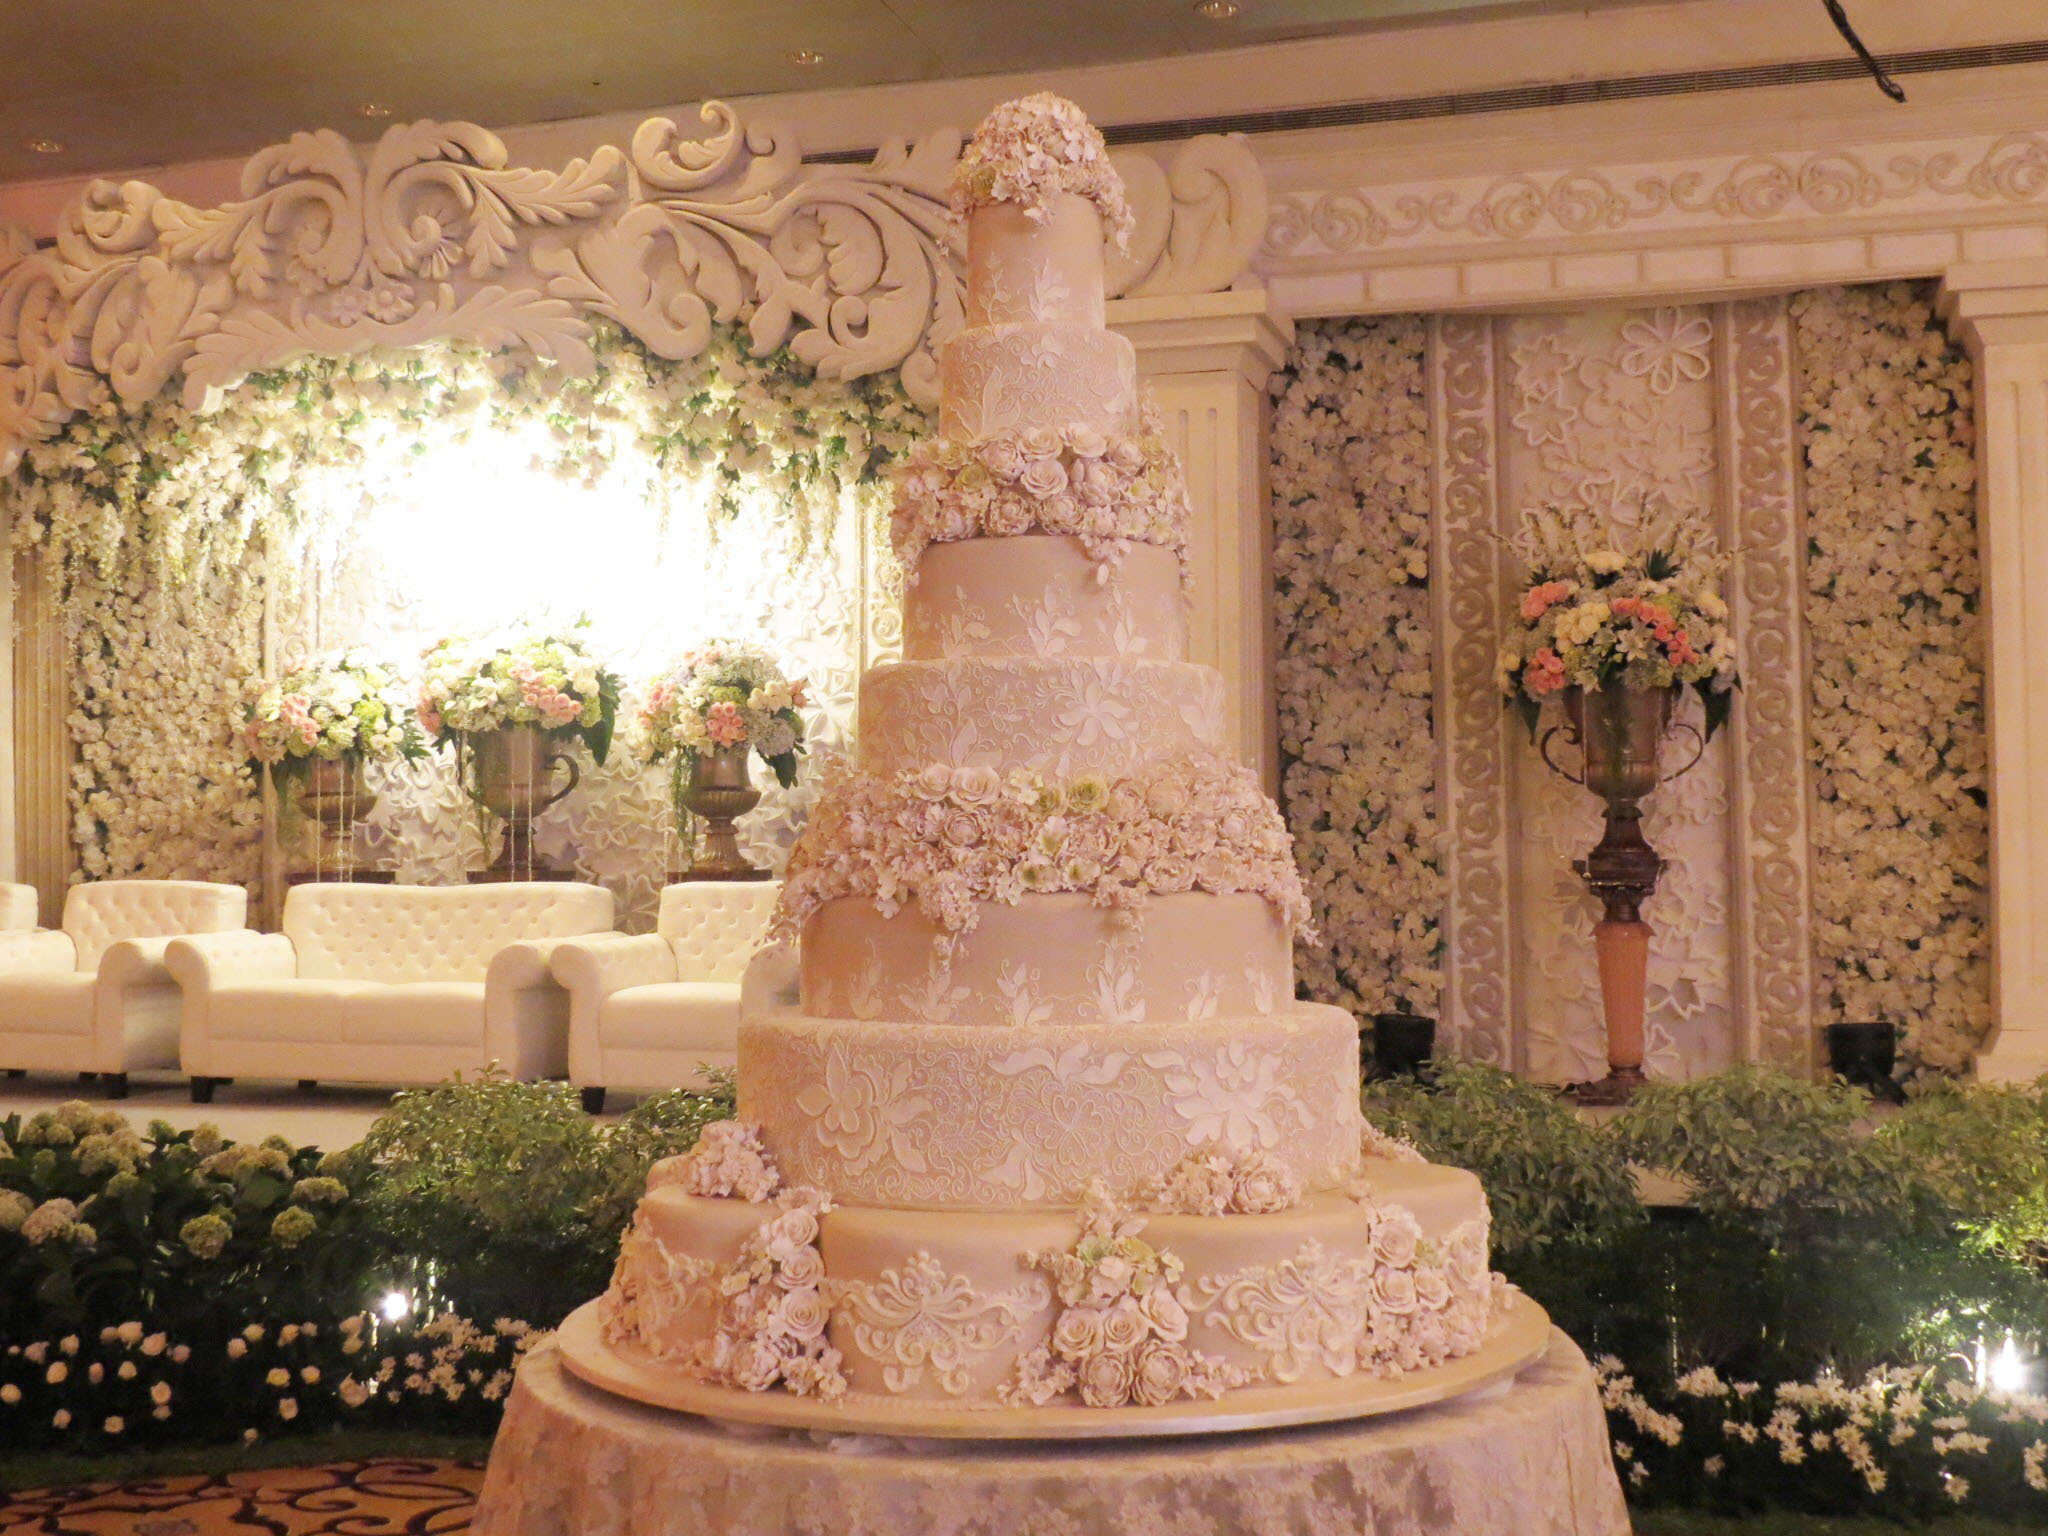 Wedding Cake 101  An Introduction to Wedding Cakes   Bridestory Blog Starting prices are Rp 3 800 000 for three tier cakes  Rp 6 000 000 for  five tier cakes  and Rp 8 500 000 for seven tier cakes